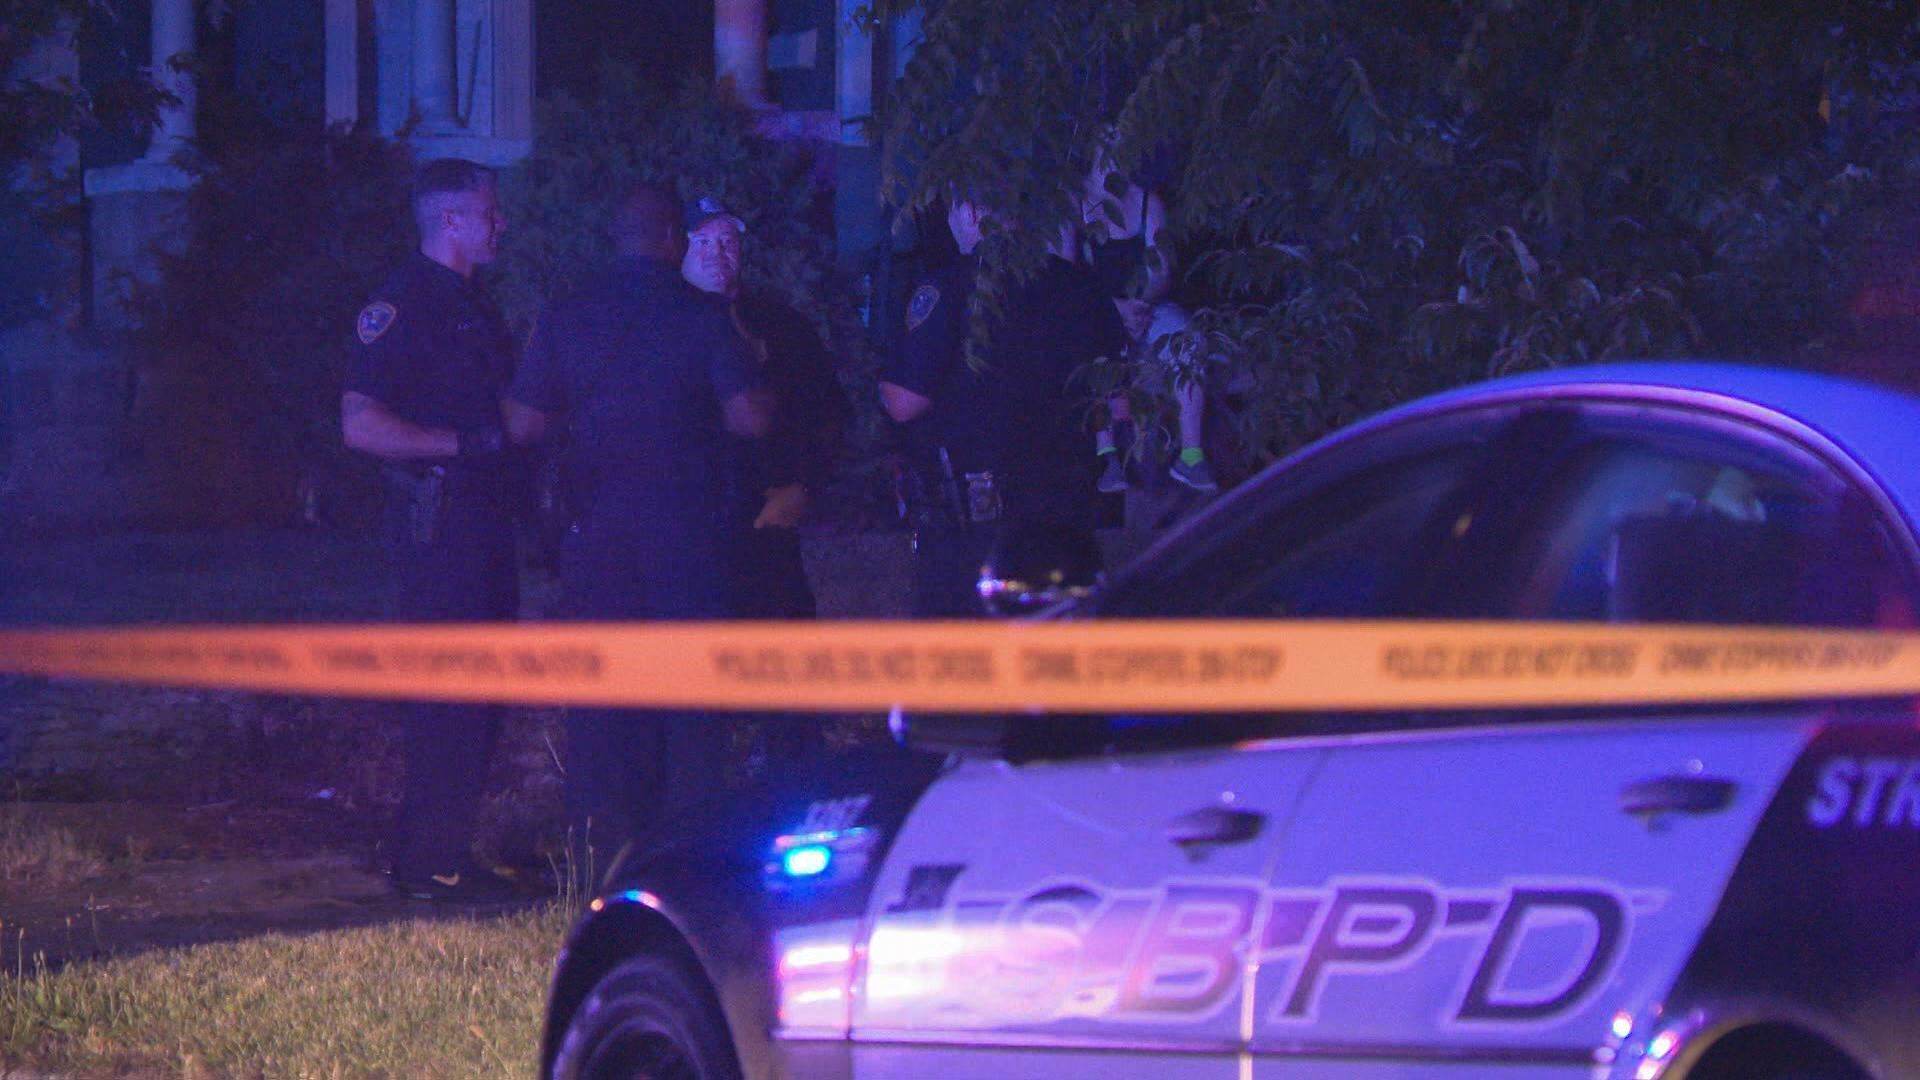 Police investigate a shooting. // WSBT 22 photo